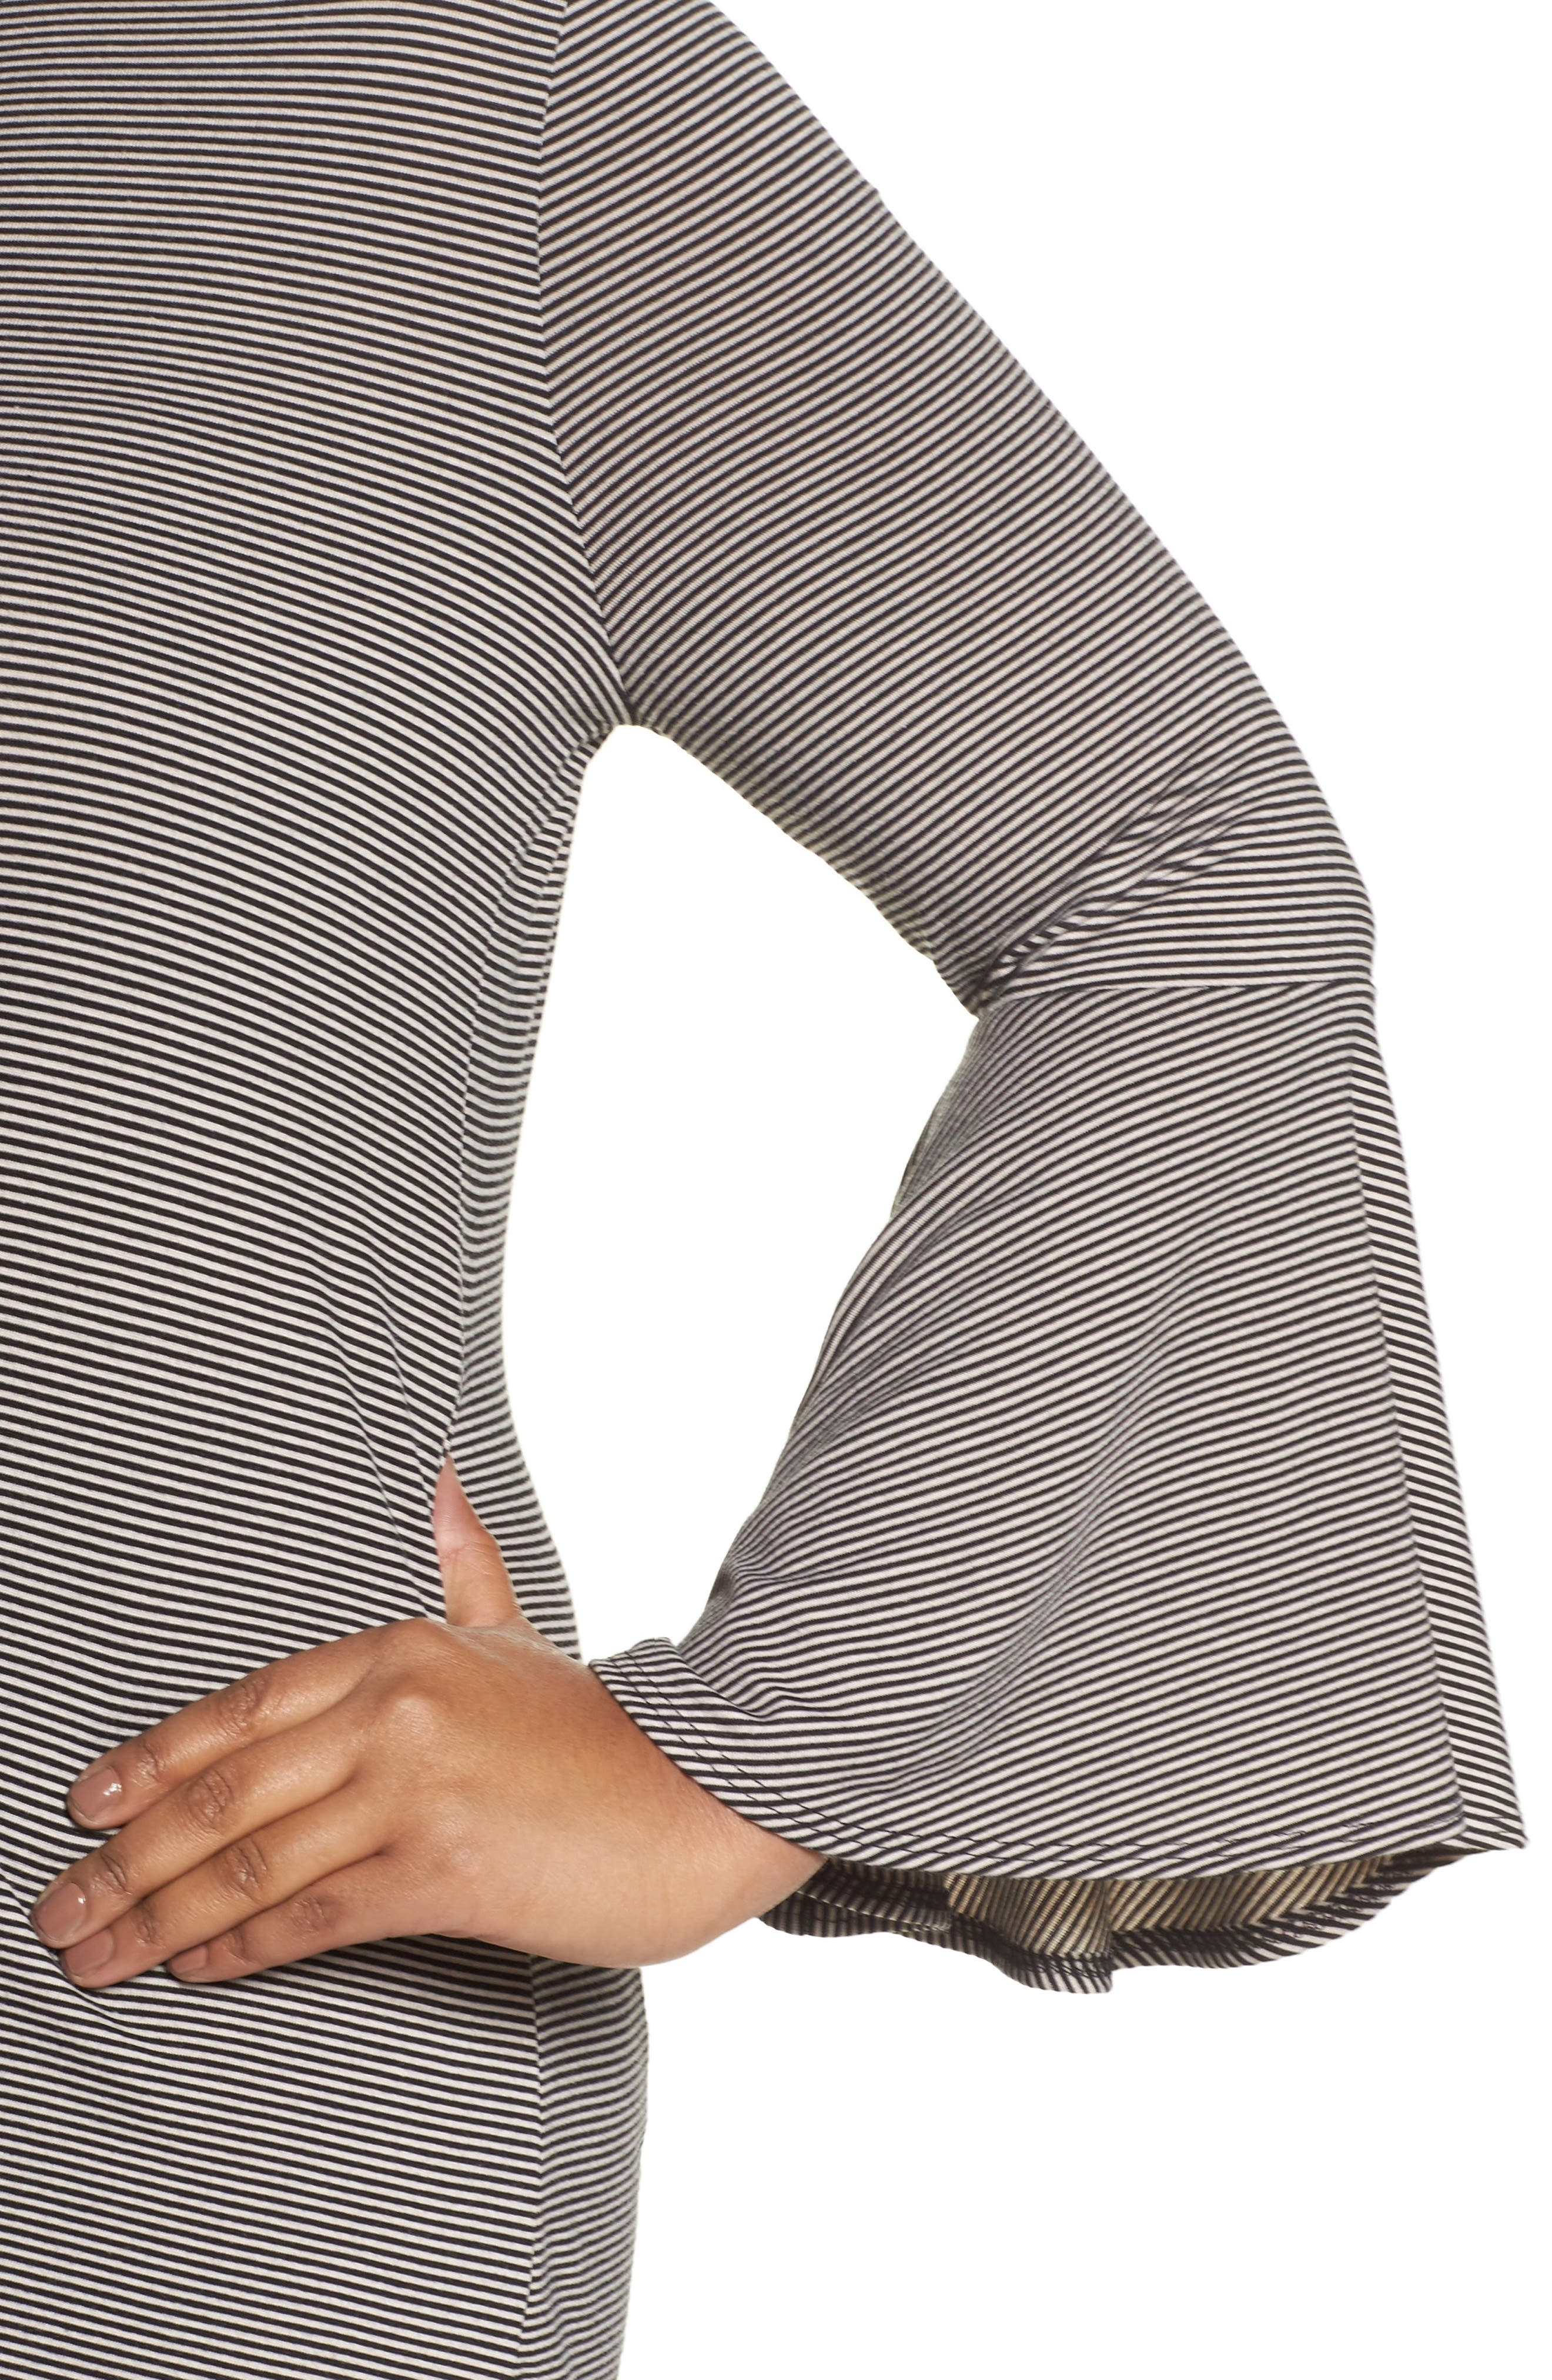 Bell Sleeve Top,                             Alternate thumbnail 5, color,                             Charcoal Heather- Black Stripe